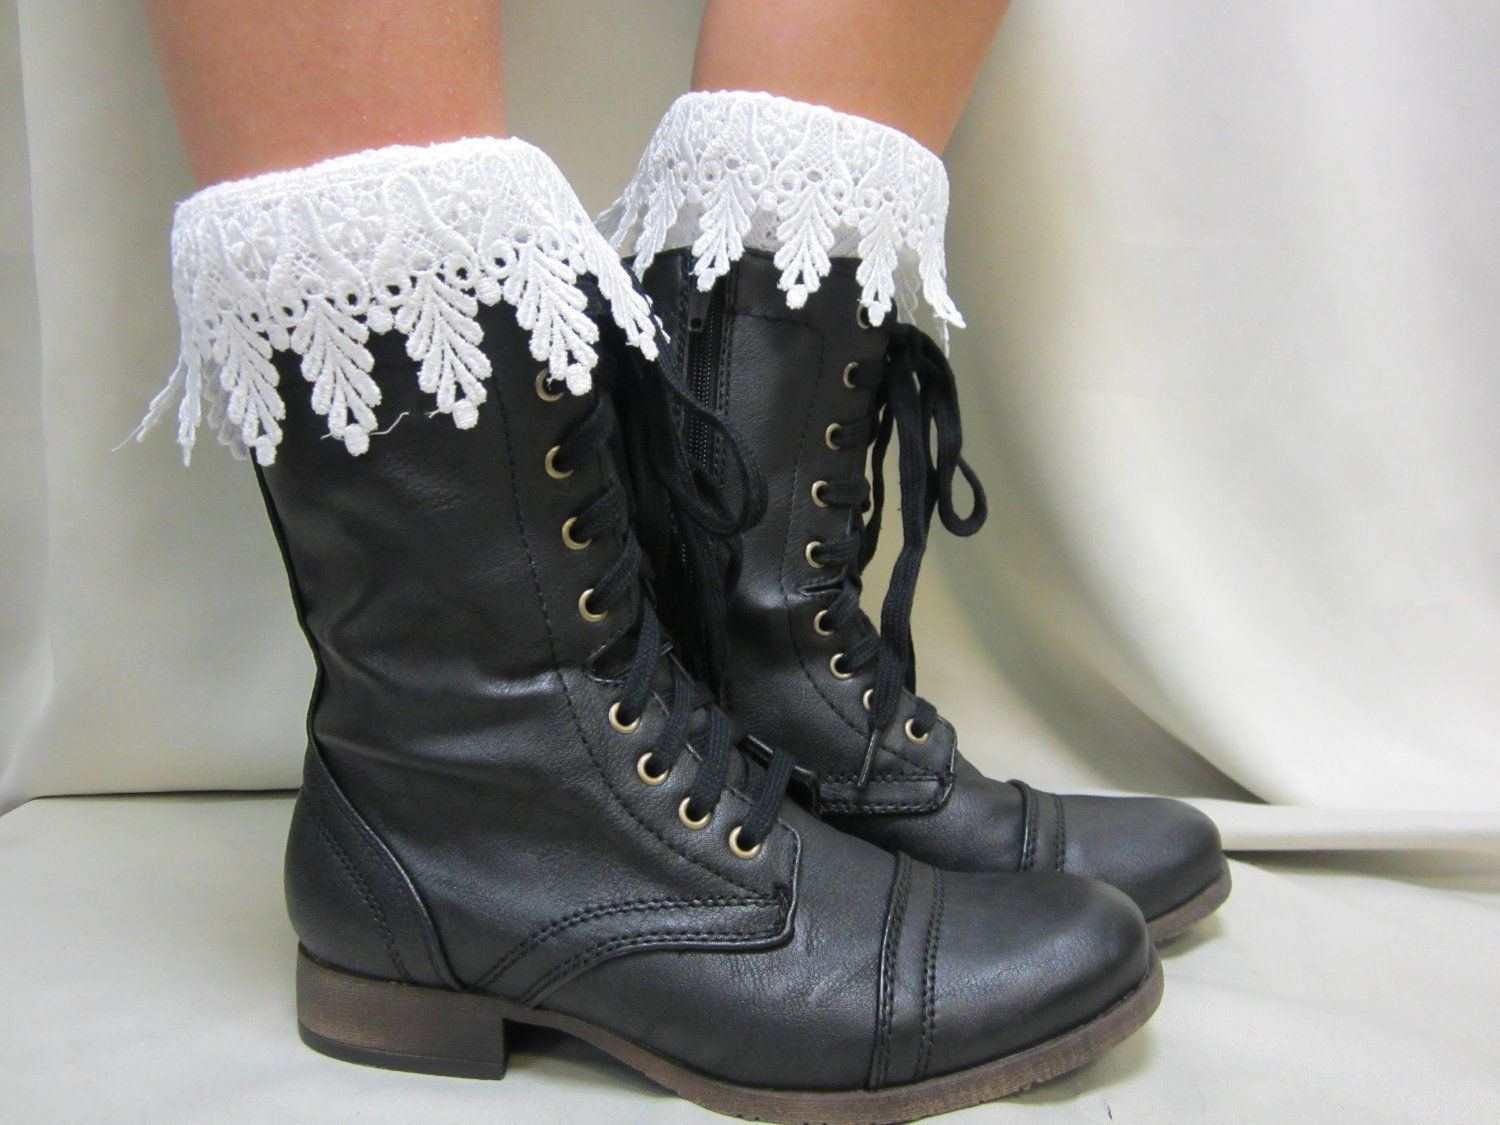 1000  images about boot socks on Pinterest | Lace socks, Lace trim ...